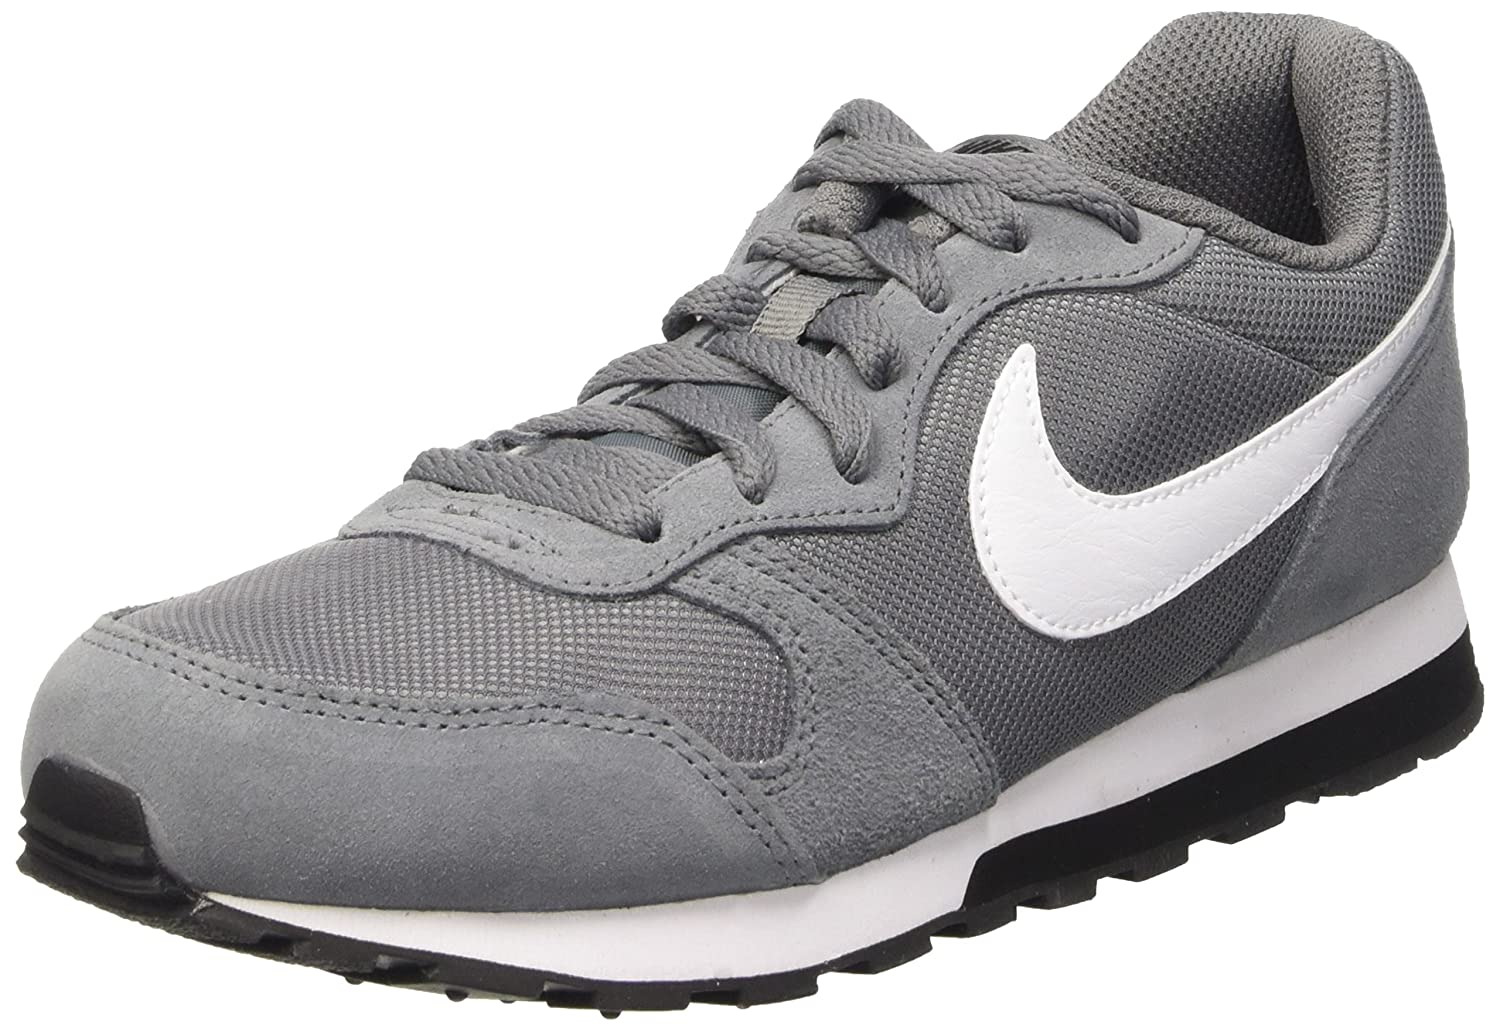 timeless design f28cb e1f5d Amazon.com   Nike MD Runner 2 (GS) Running Trainers 807316 Sneakers Shoes  (4.5 M US Big Kid, Cool Grey White Black 002)   Sneakers